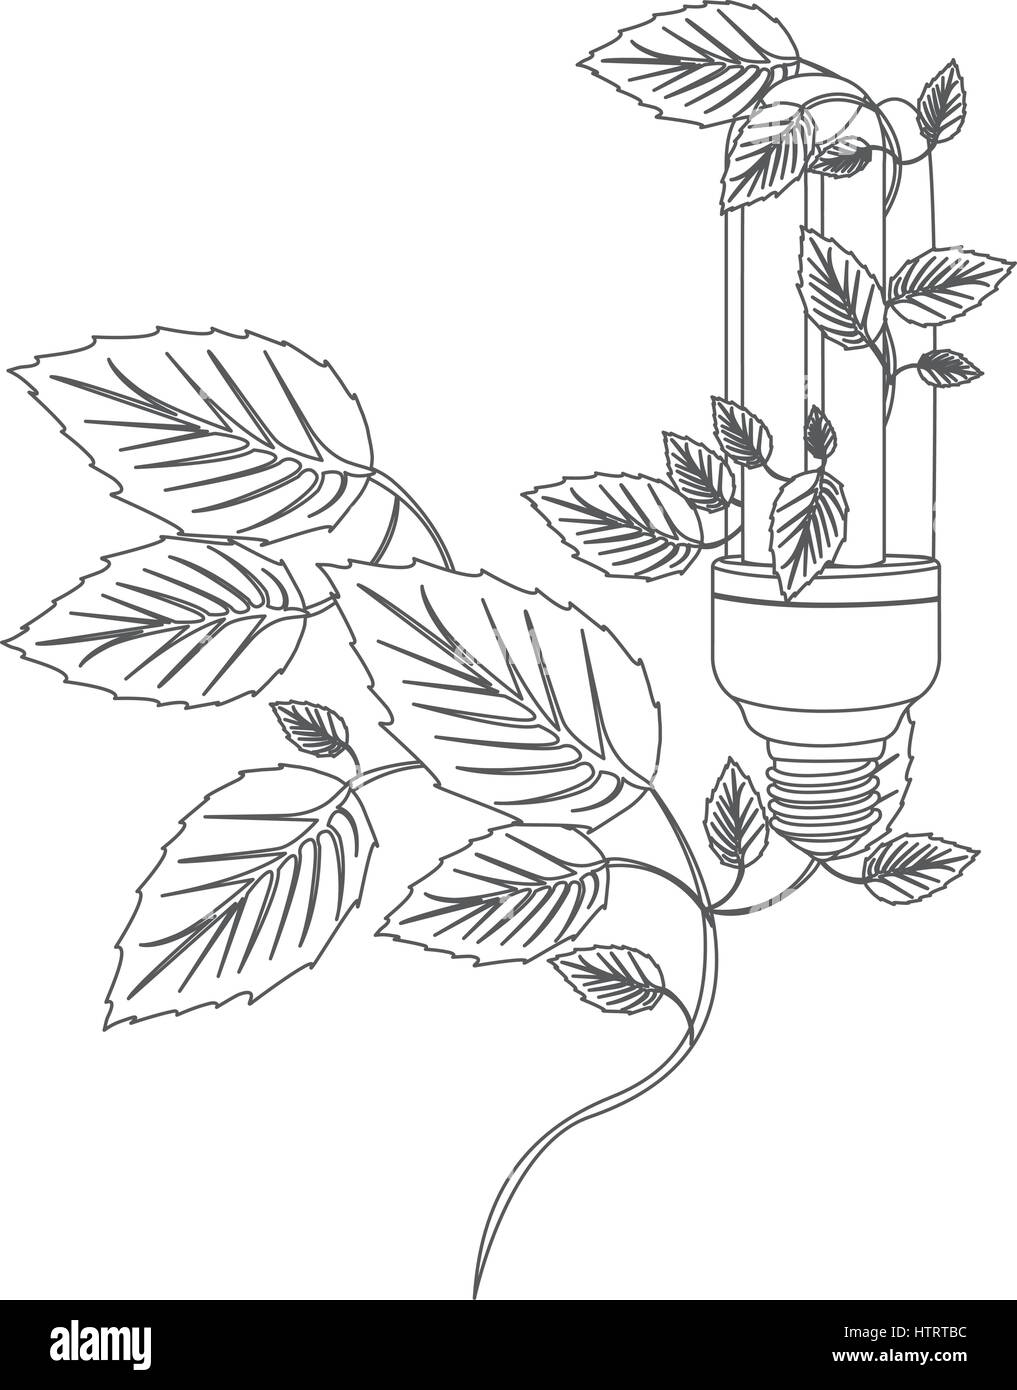 Grayscale Contour With Fluorescent Bulb And Creeper Plant Stock Vector Image Art Alamy